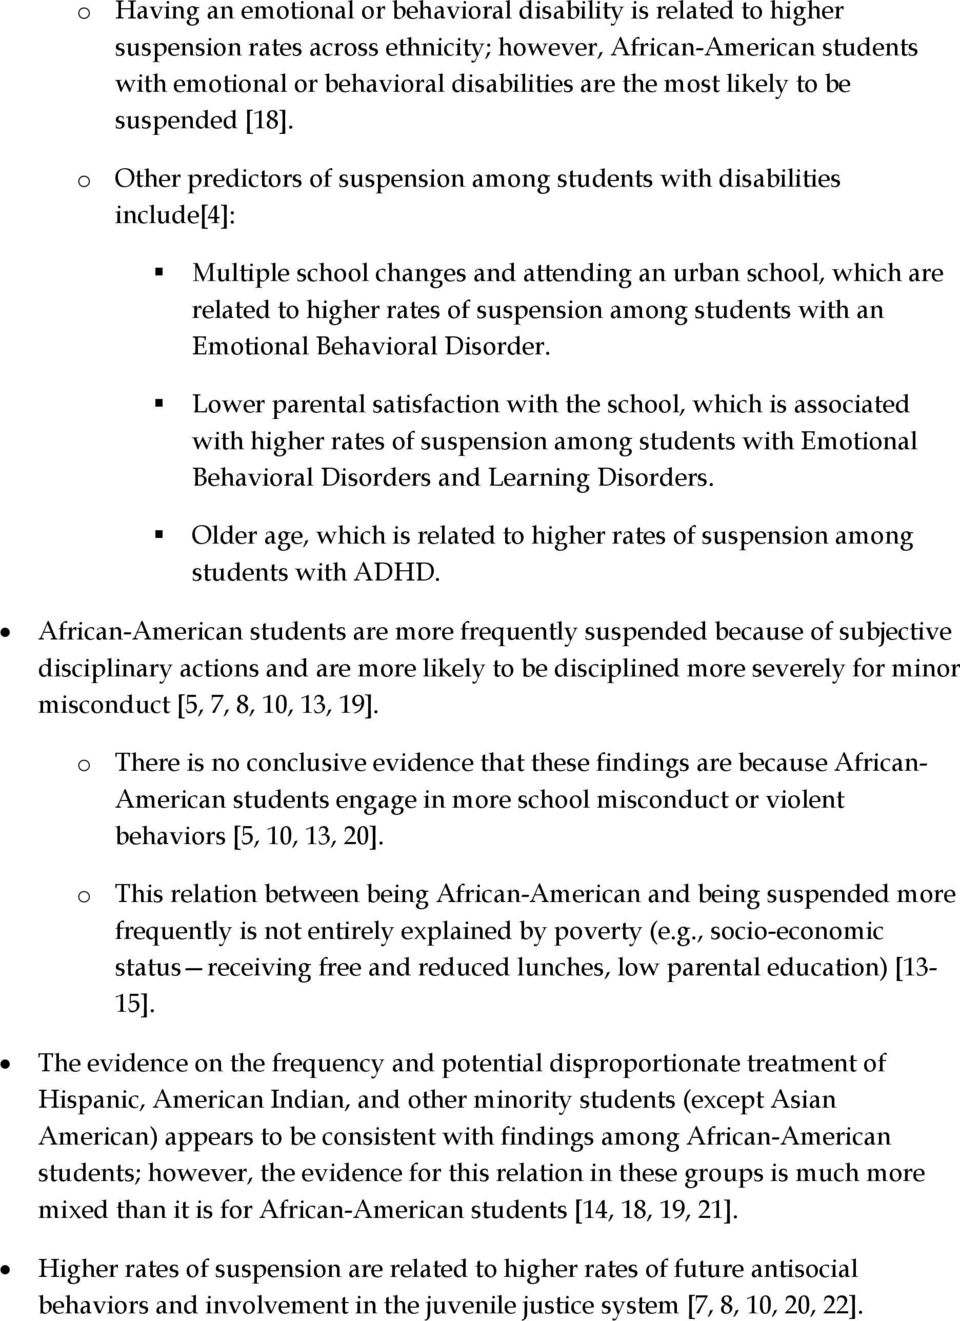 o Other predictors of suspension among students with disabilities include[4]: Multiple school changes and attending an urban school, which are related to higher rates of suspension among students